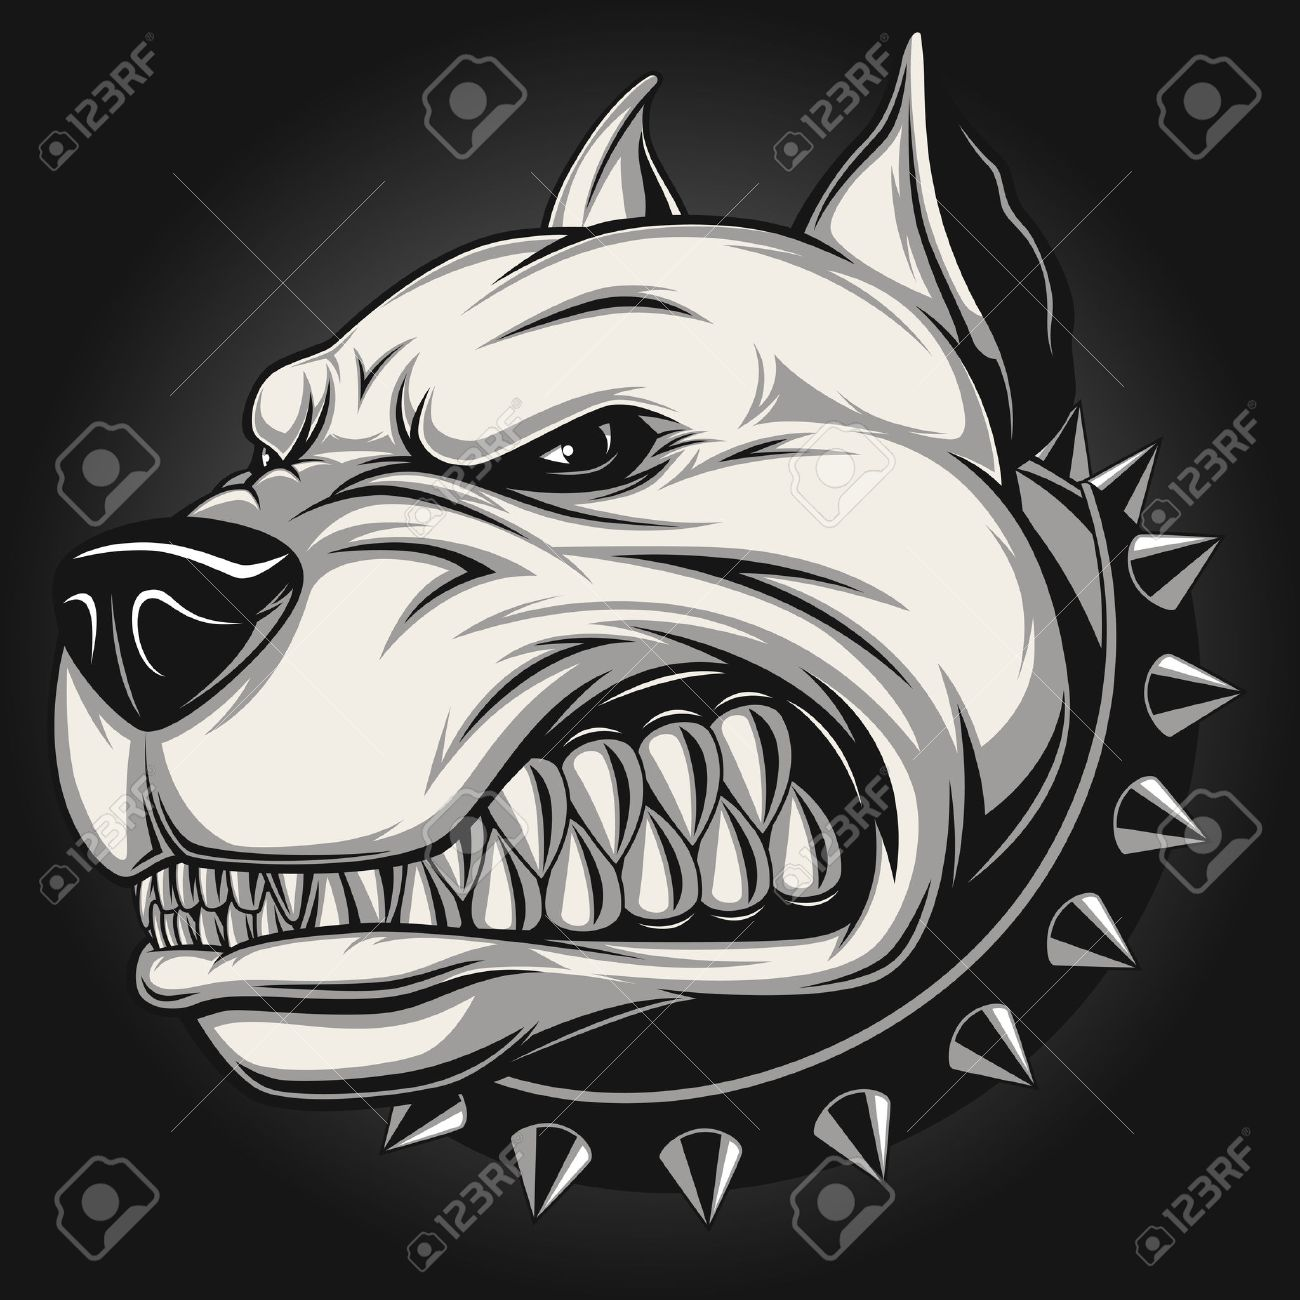 Vector Illustration Angry Pitbull Mascot Head On A White Background